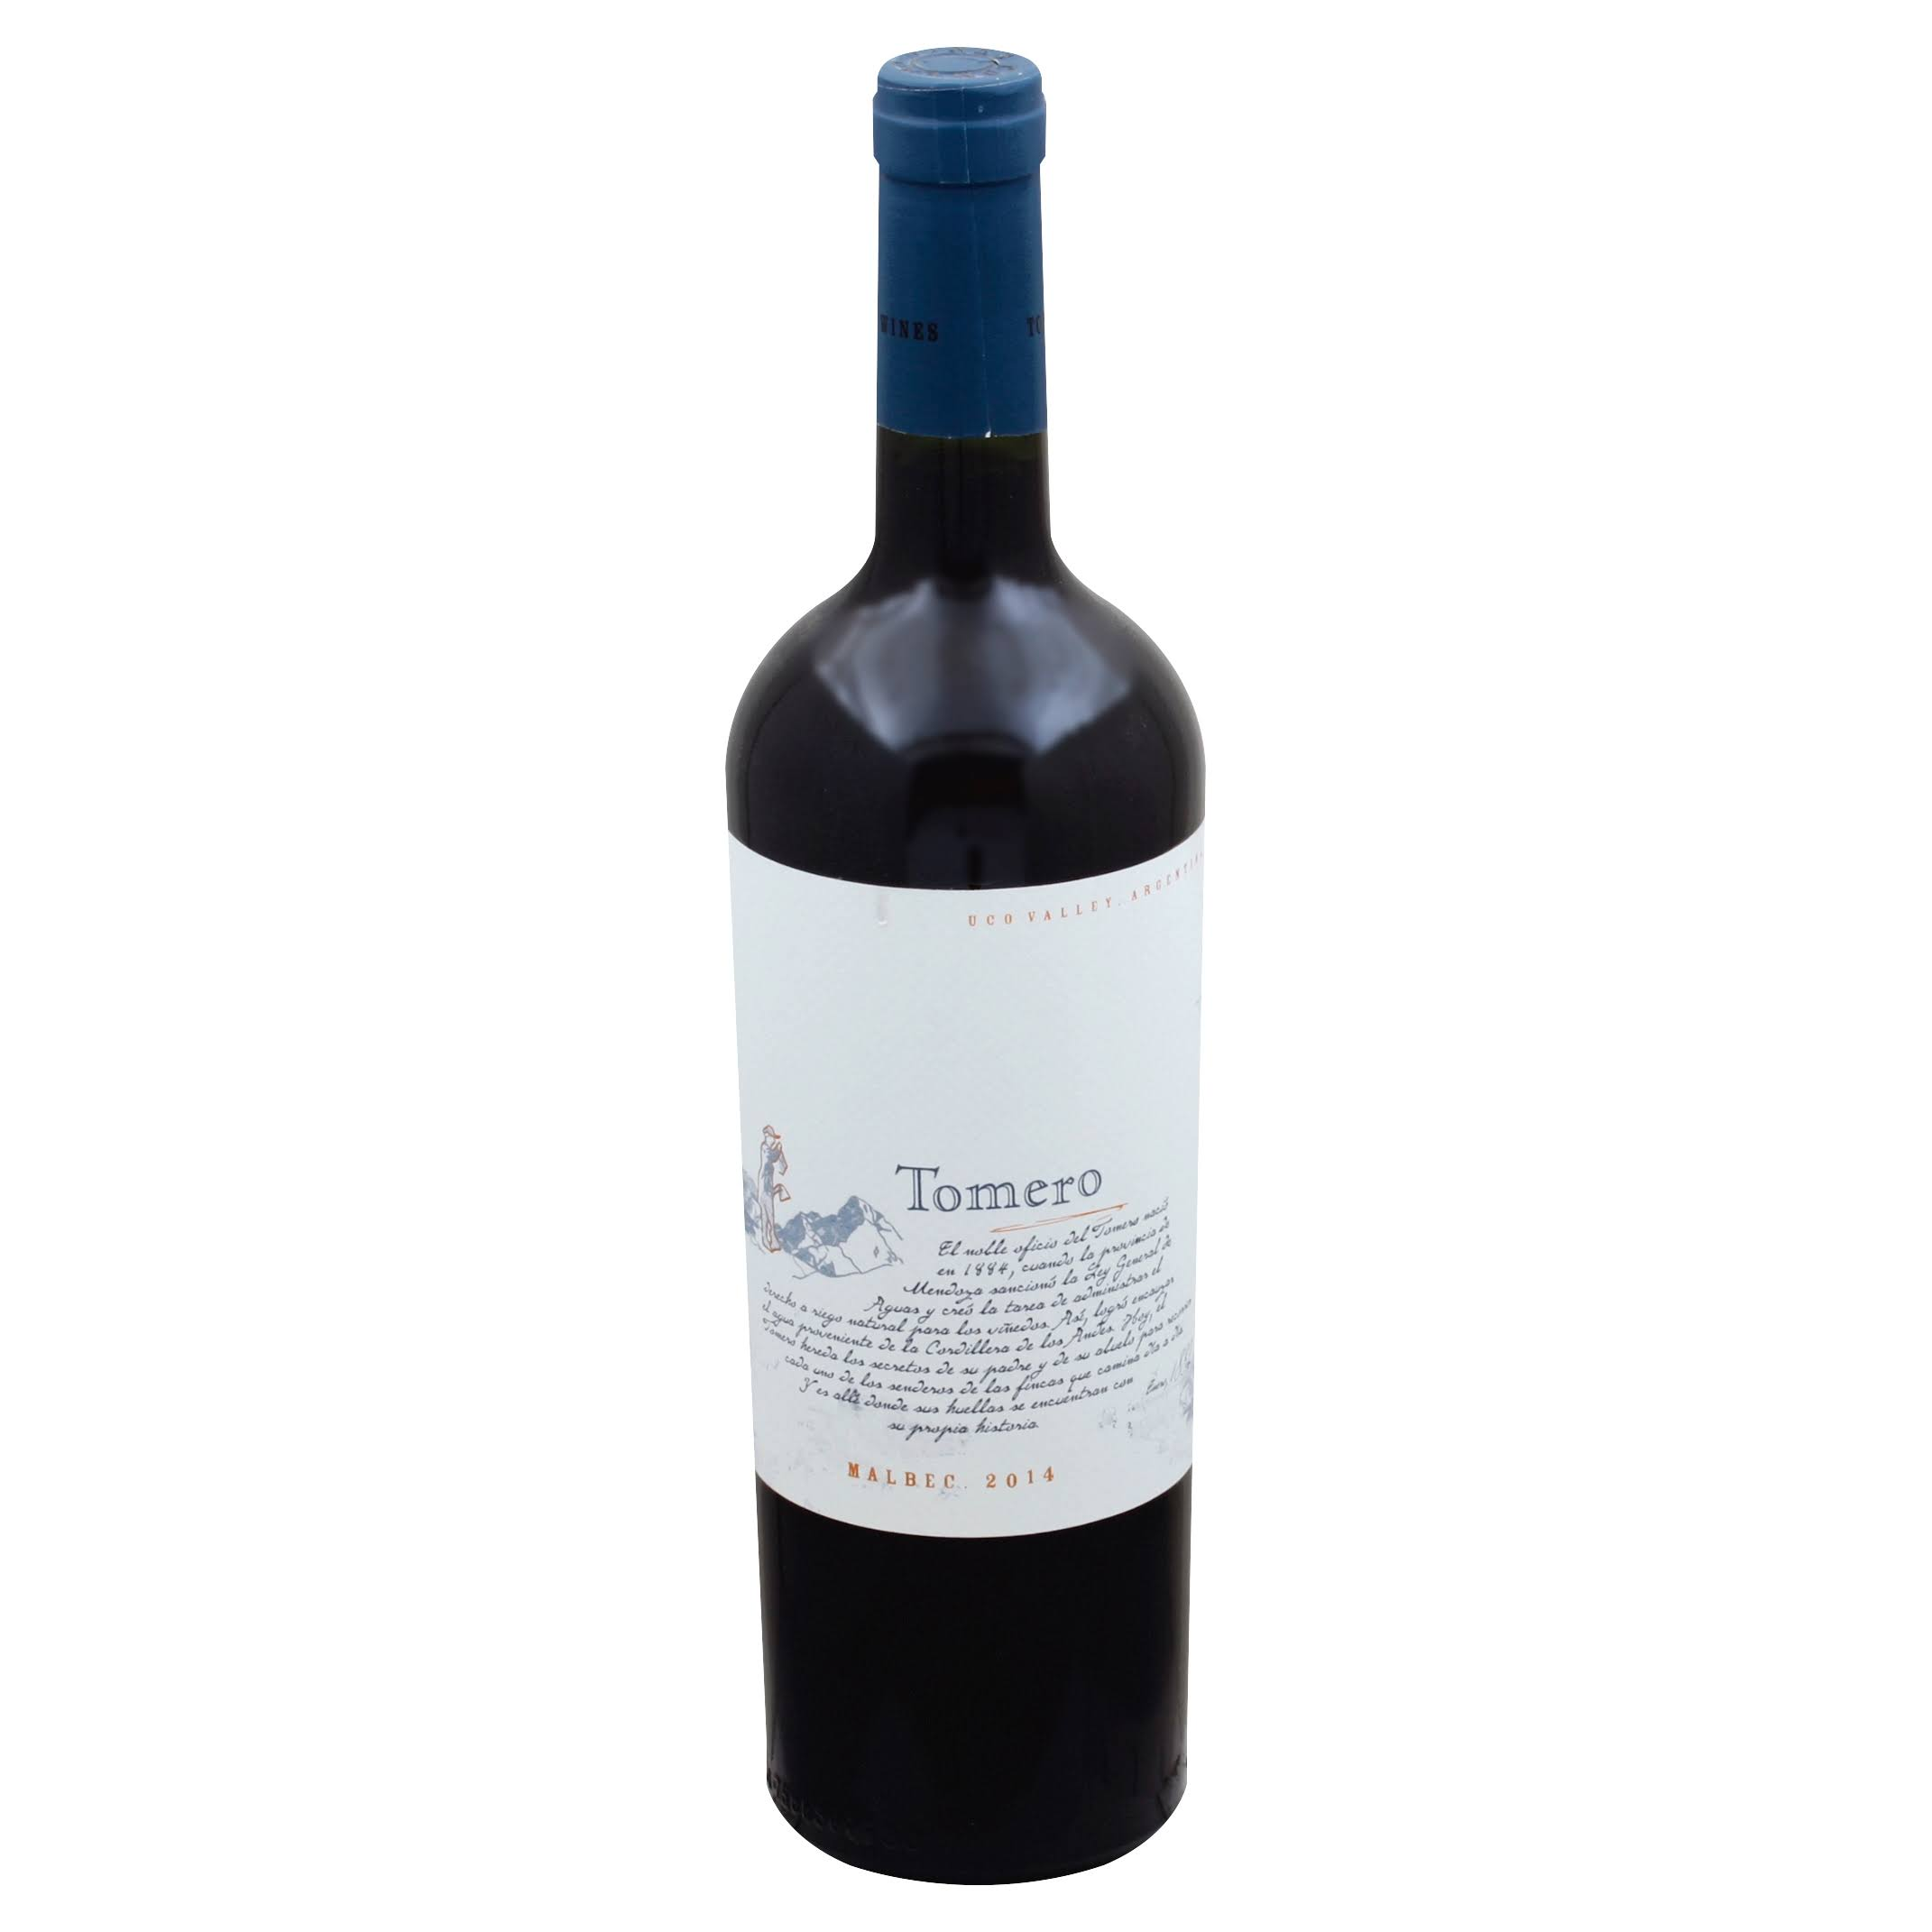 Tomero Malbec, Mendoza (Vintage Varies) - 750 ml bottle